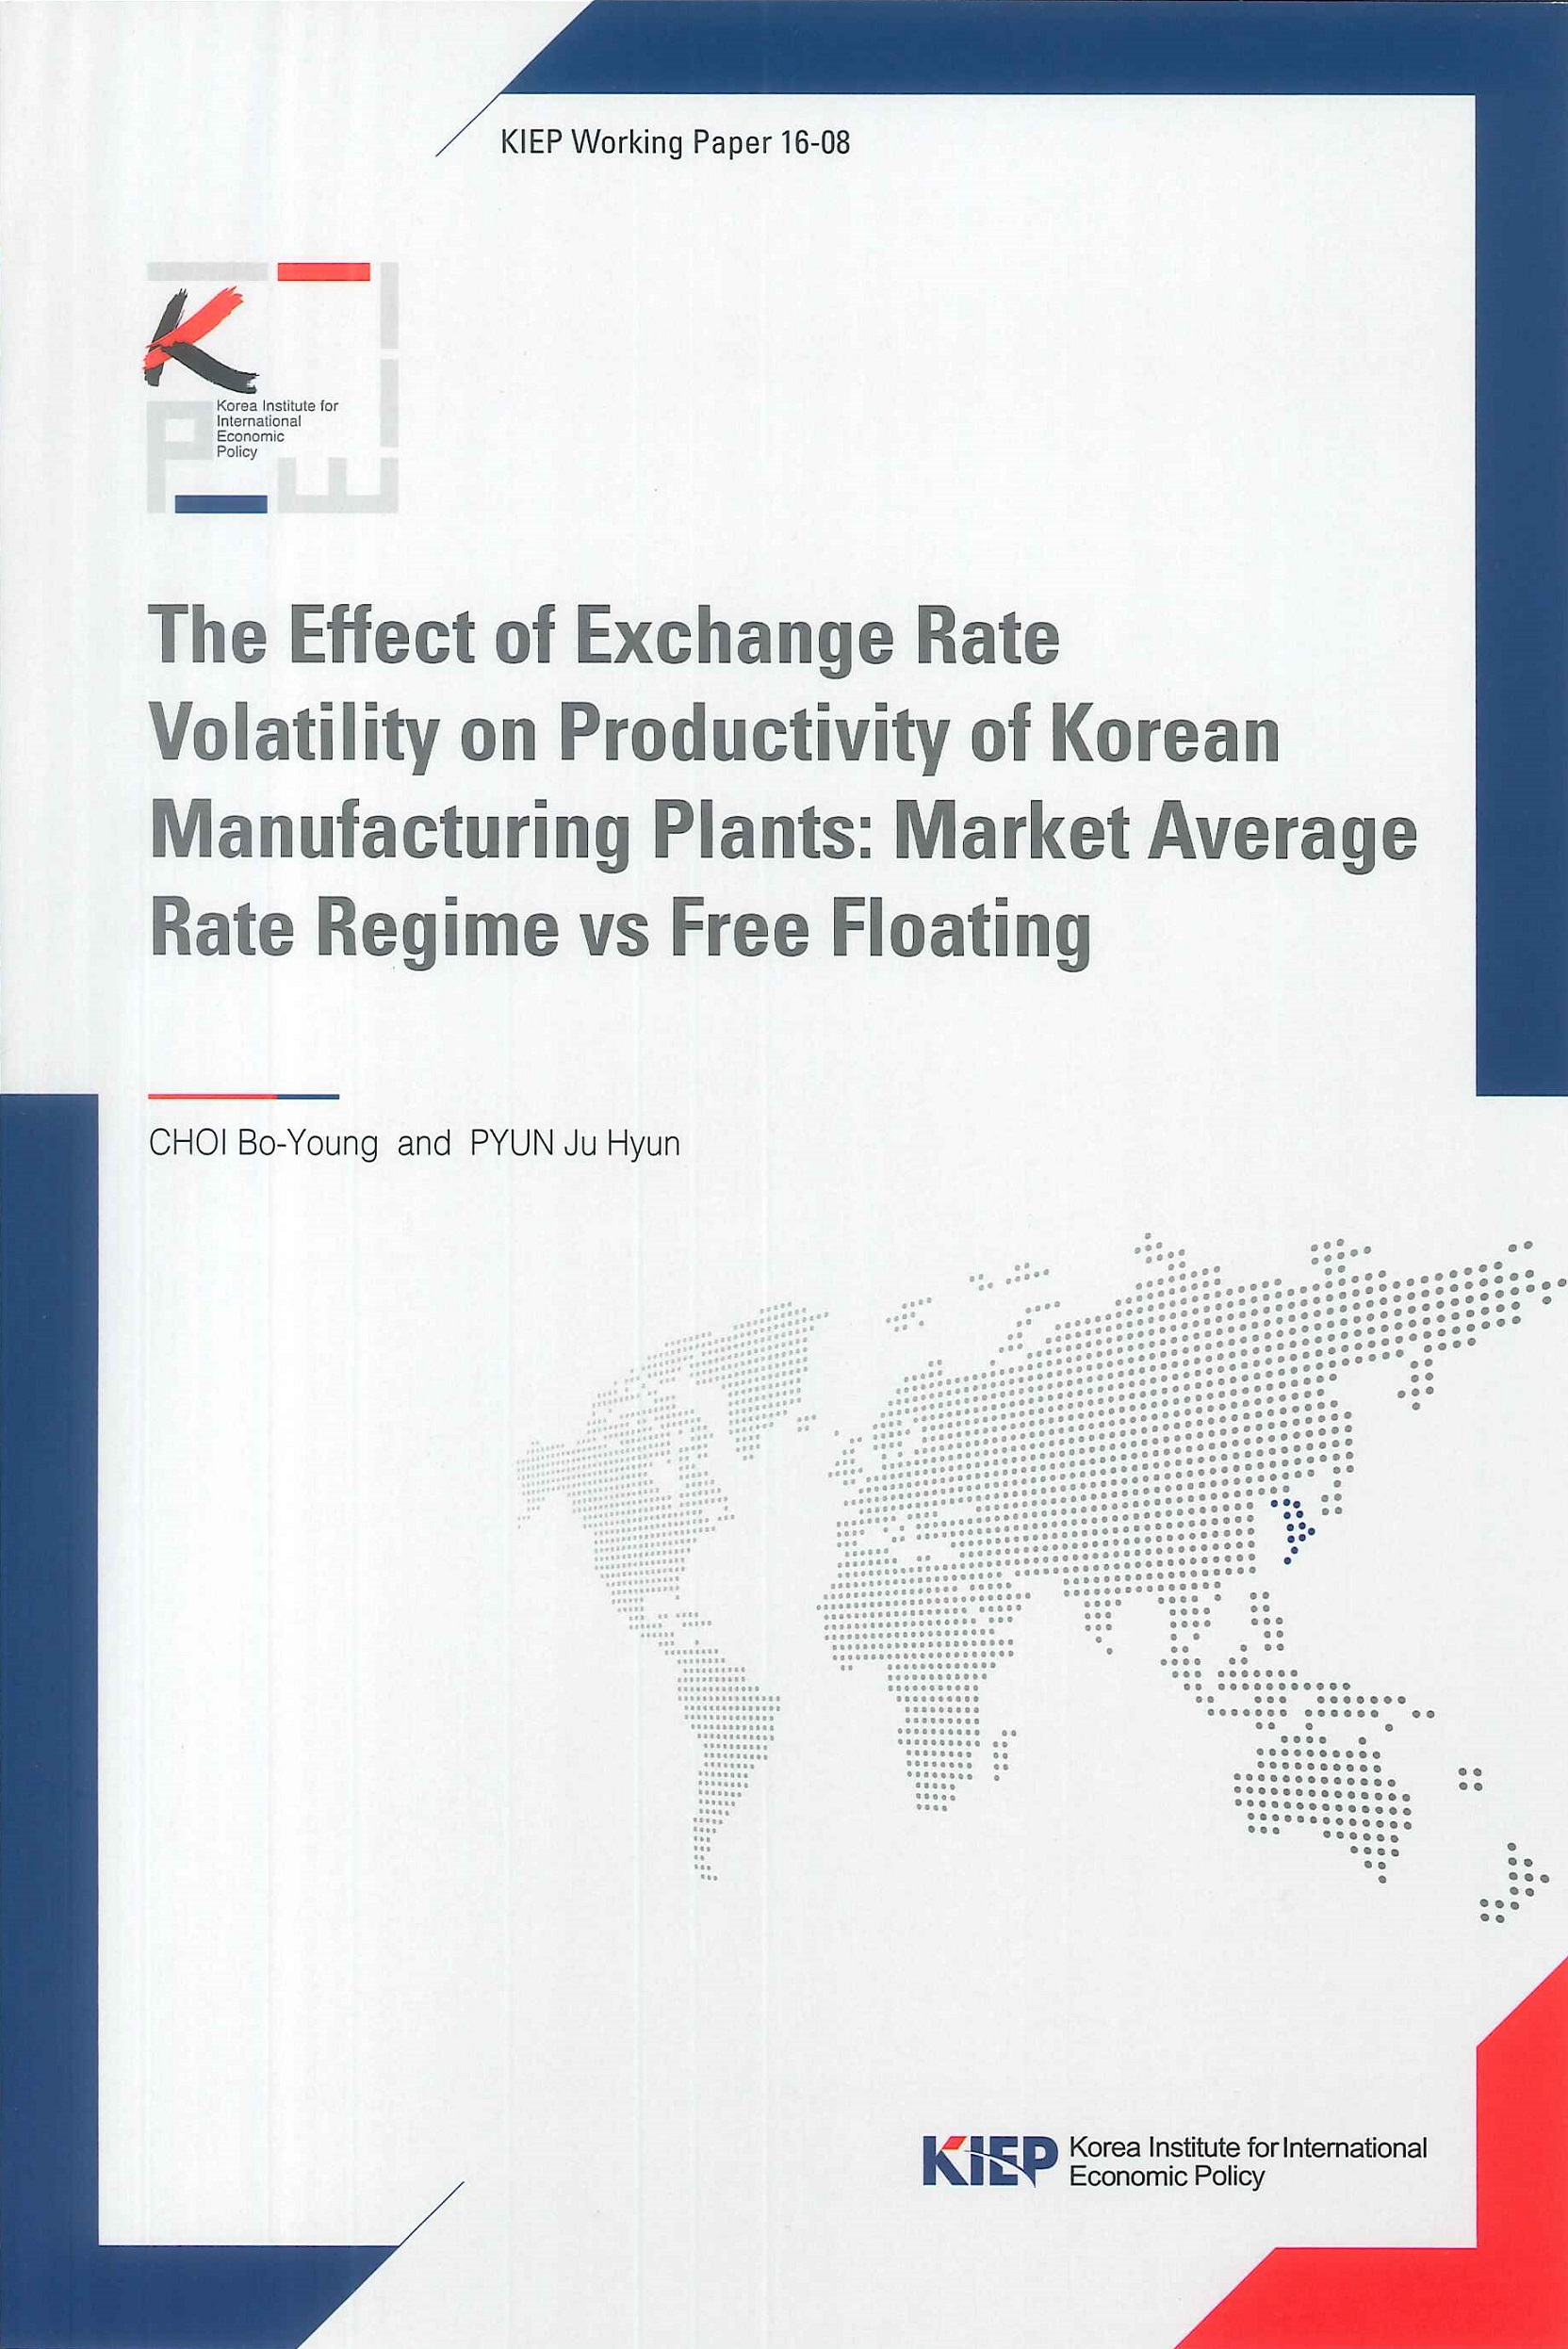 The effect of exchange rate volatility on productivity of Korean manufacturing plants:market average rate regime vs free floating